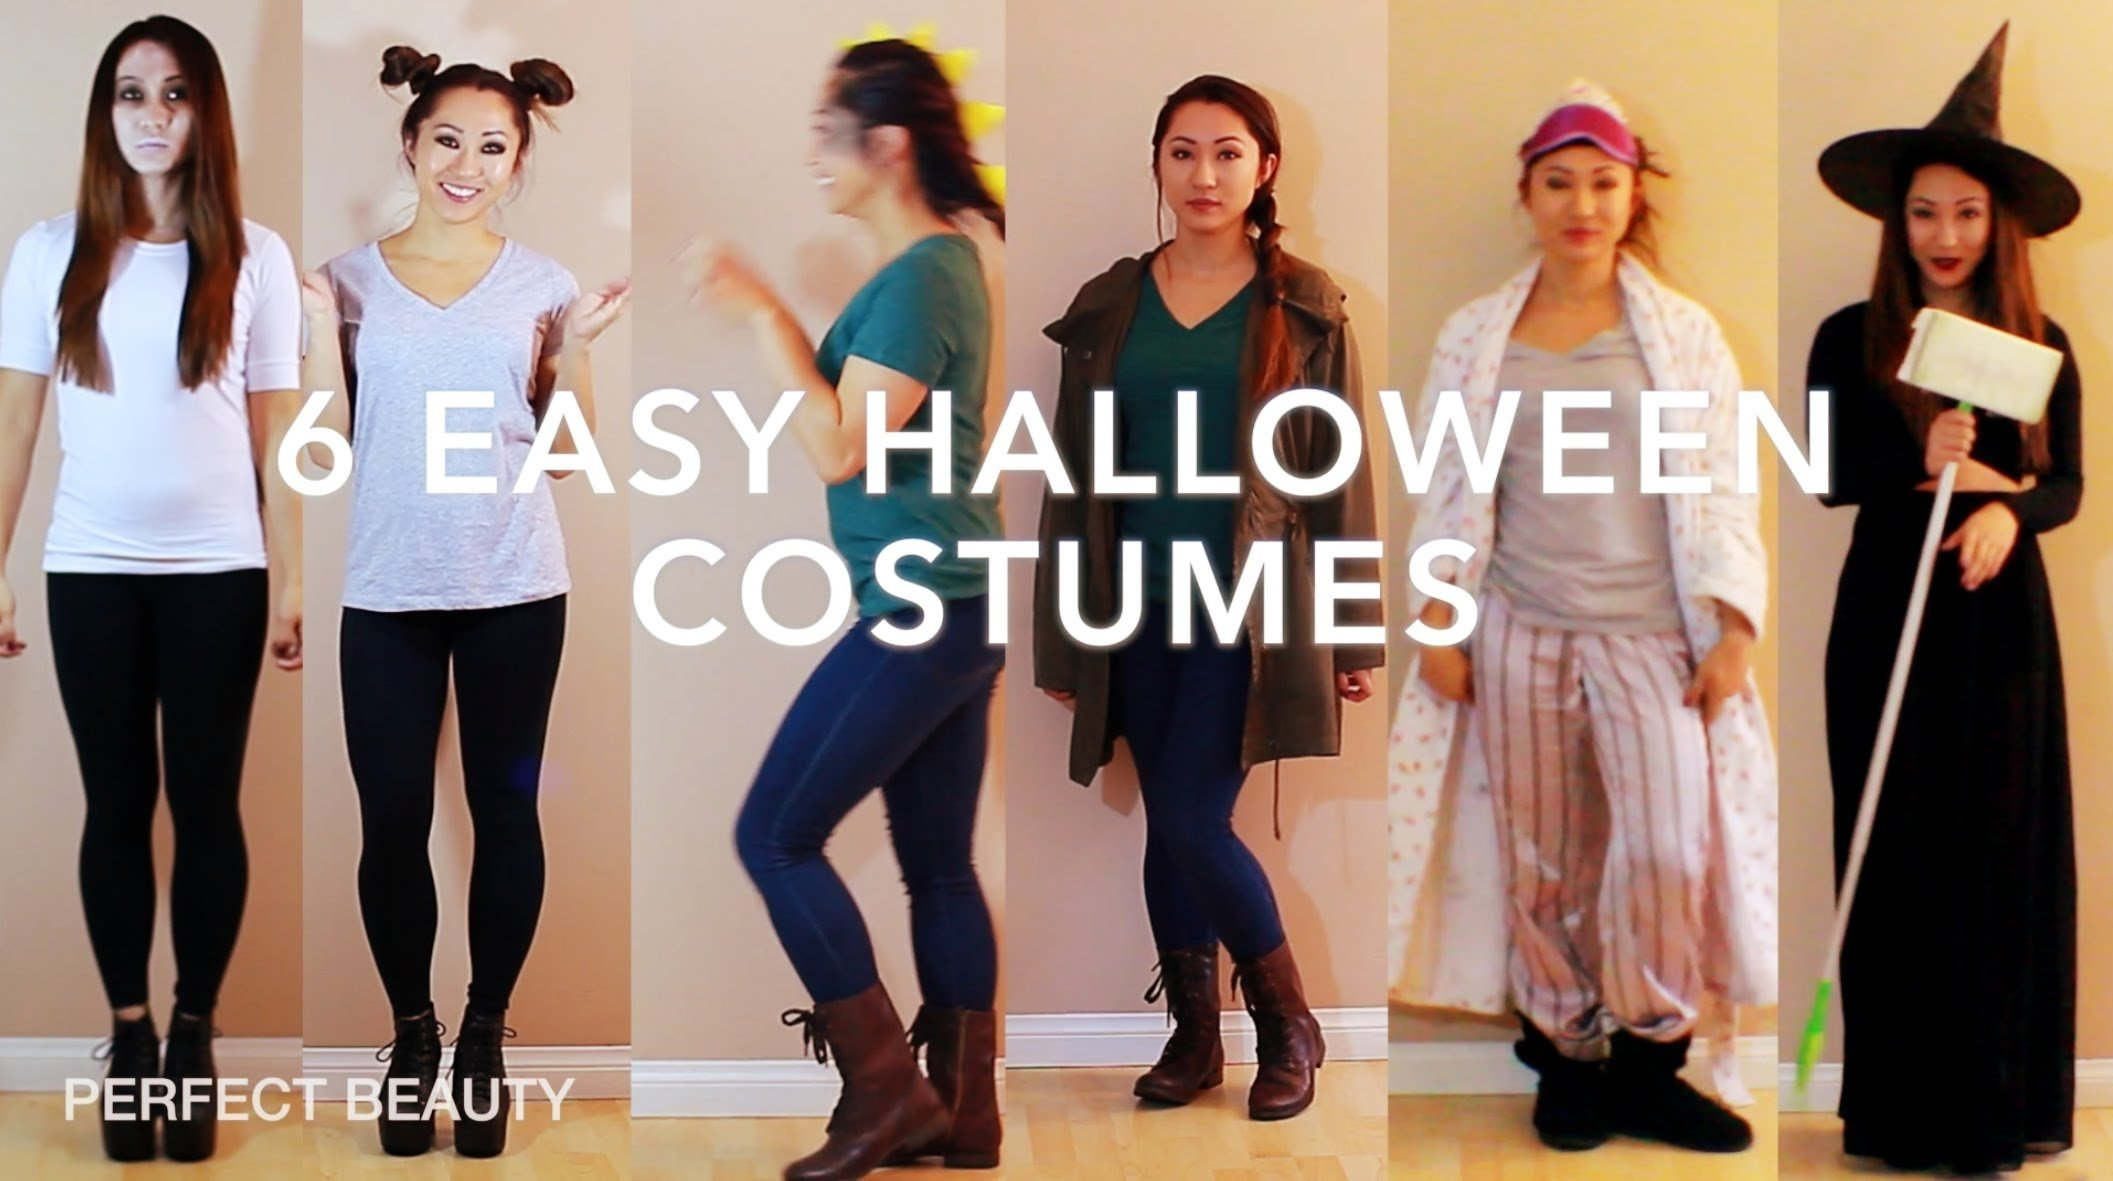 10 Cute Good Last Minute Costume Ideas last minute diy halloween costume ideas perfect beauty youtube 5 2020